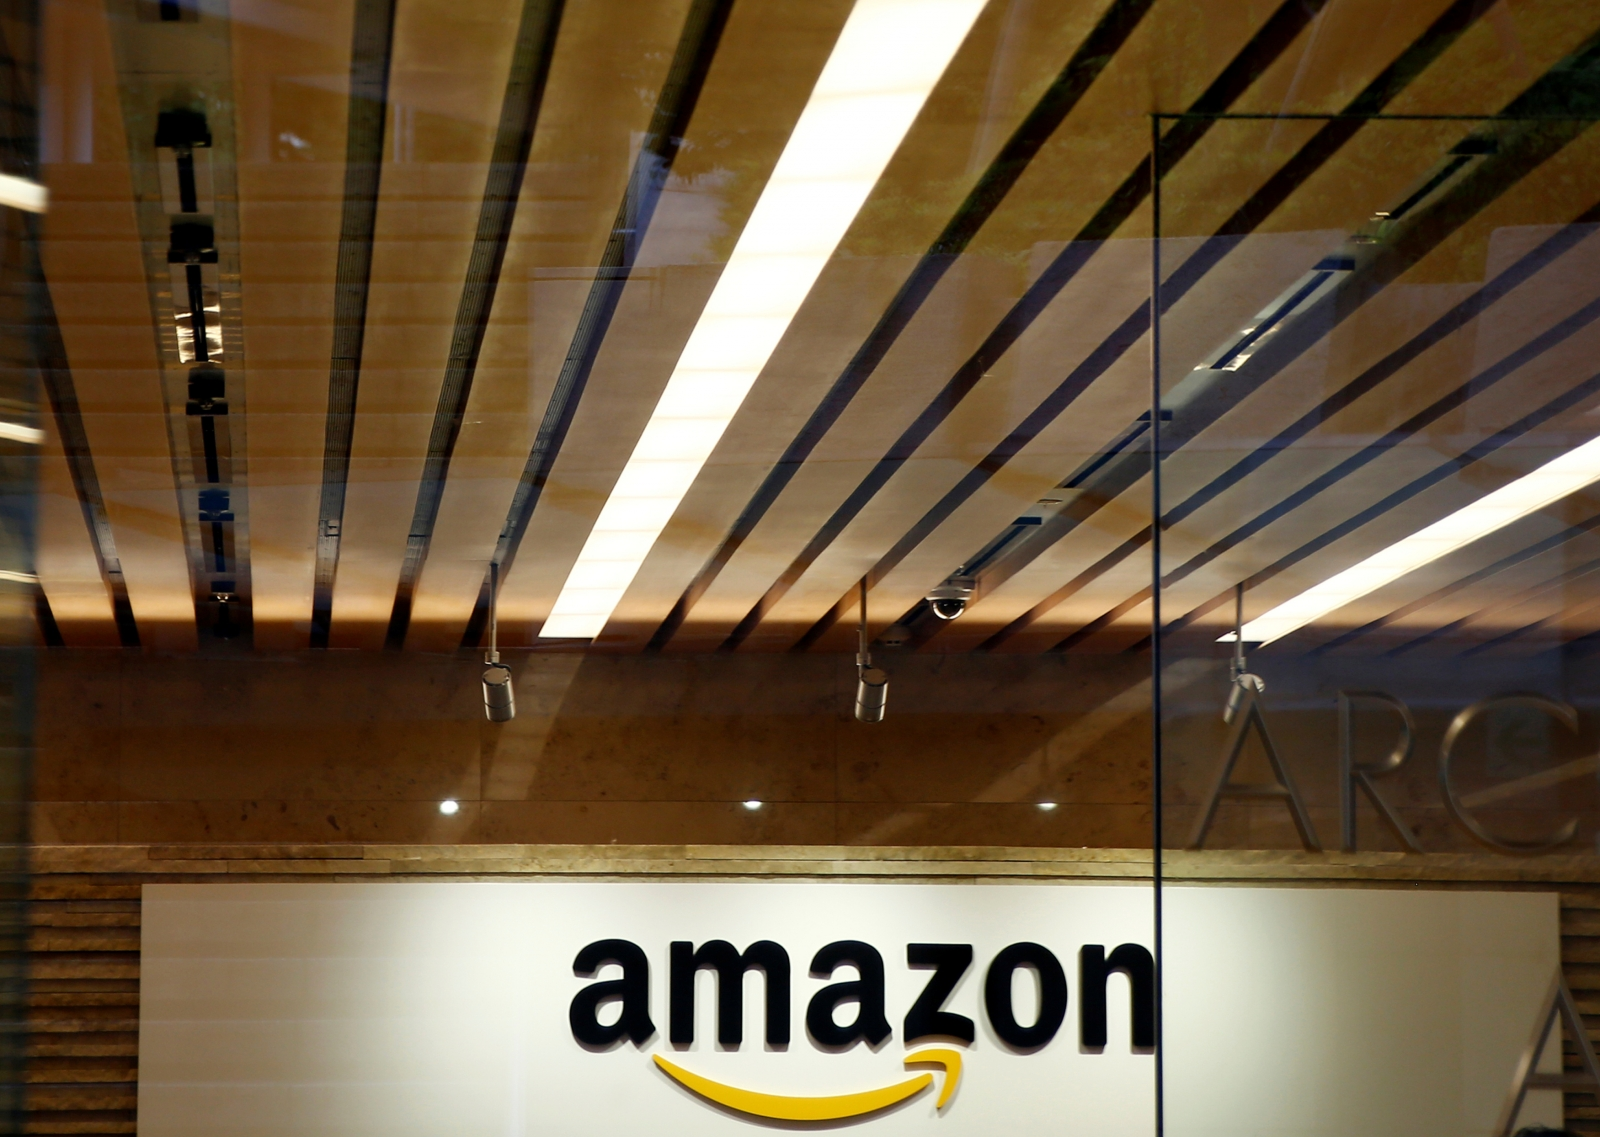 Amazon Business launched in the UK